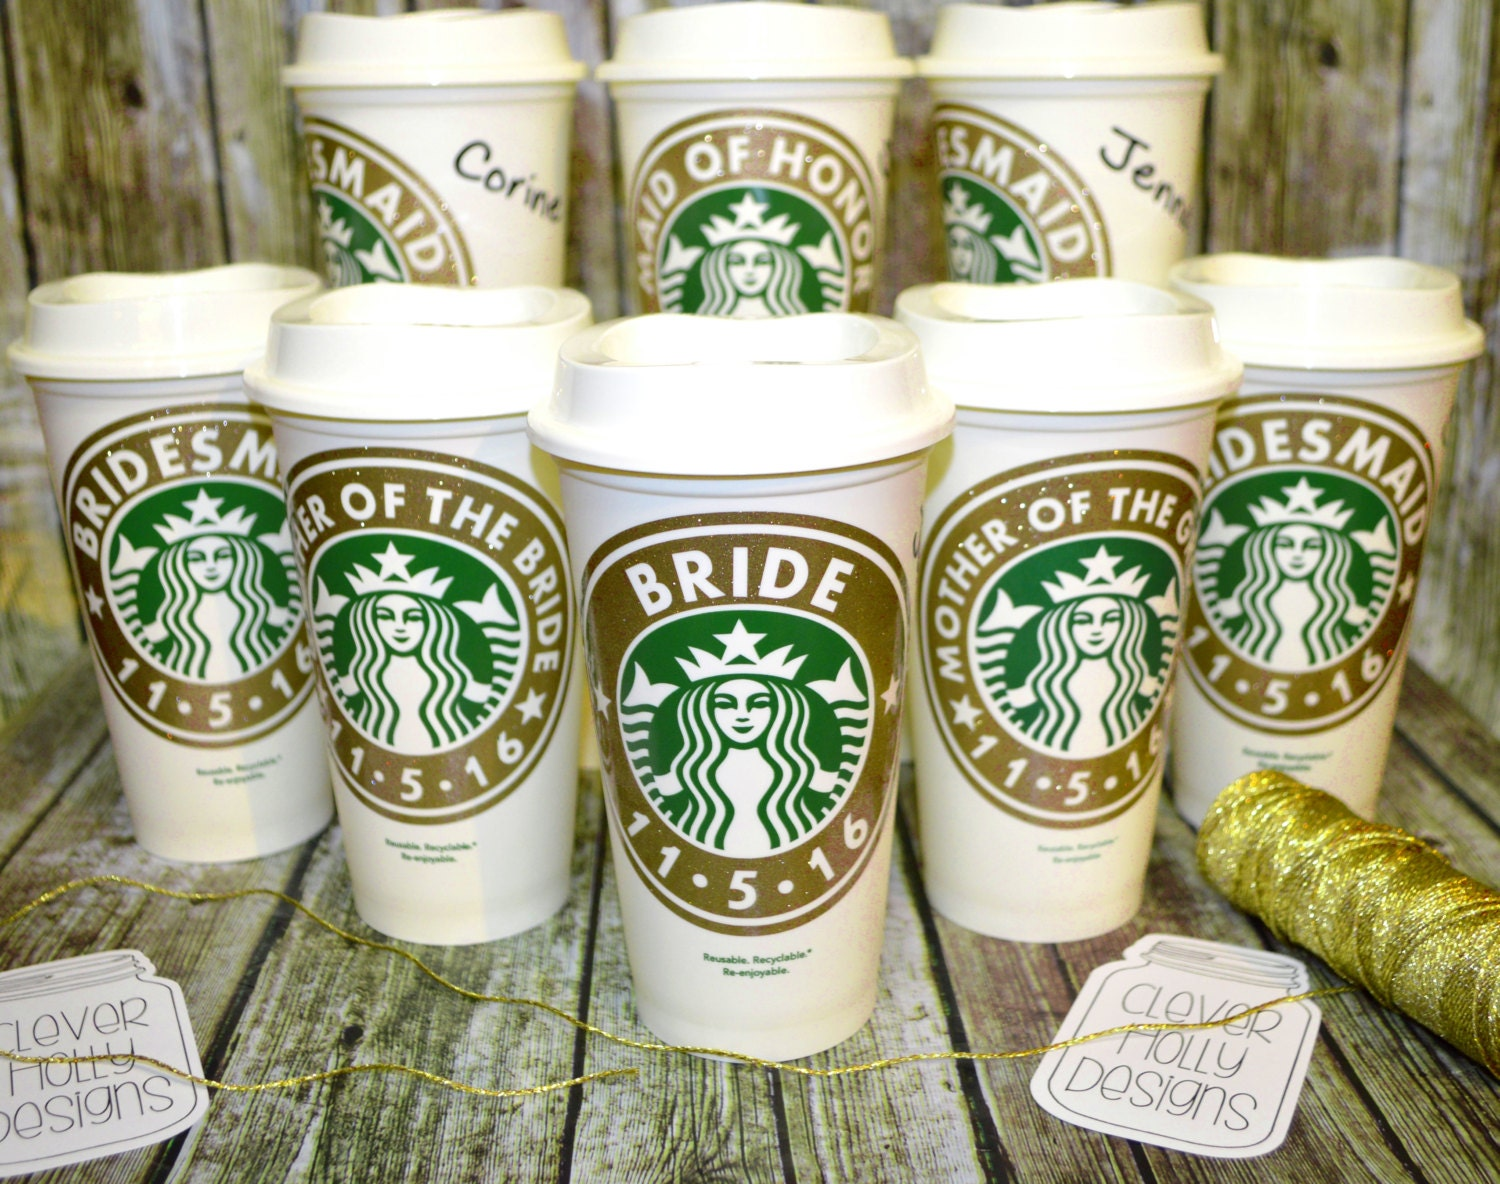 Bridesmaid Gifts Personalized Starbucks Coffee Cup With Name Etsy